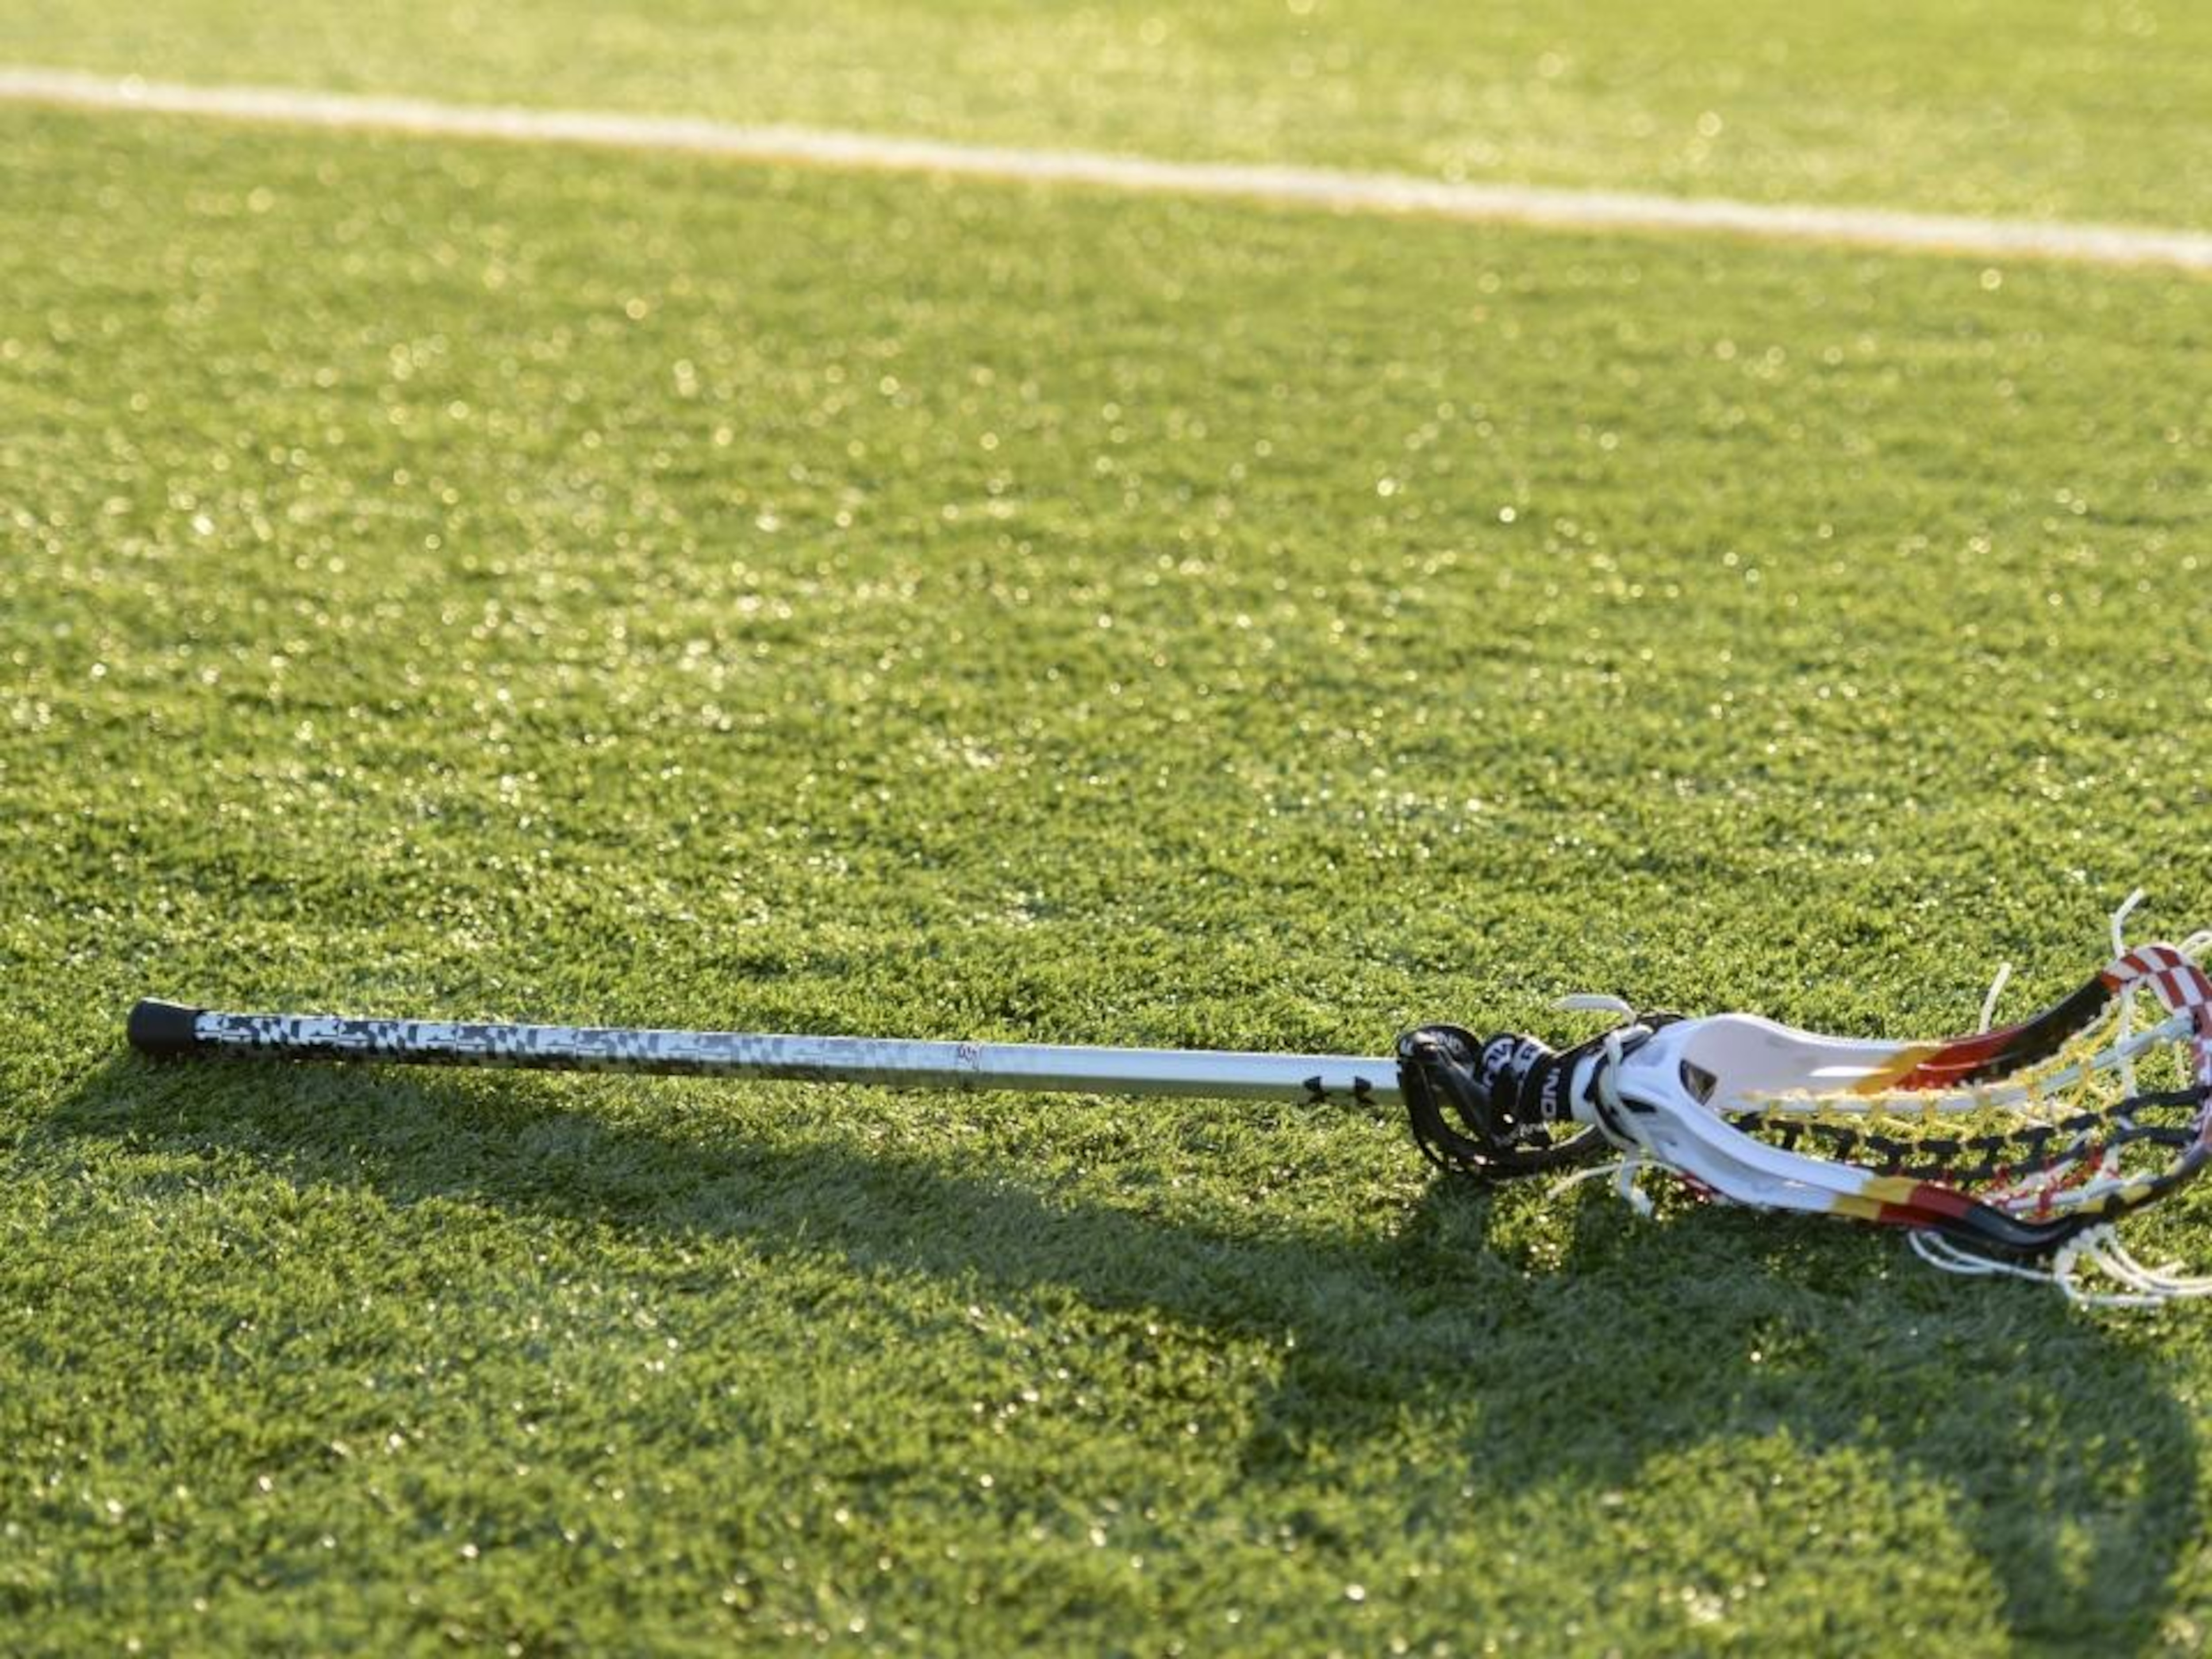 2019 NCAA Women's Lacrosse Tournament: Bracket, Schedule